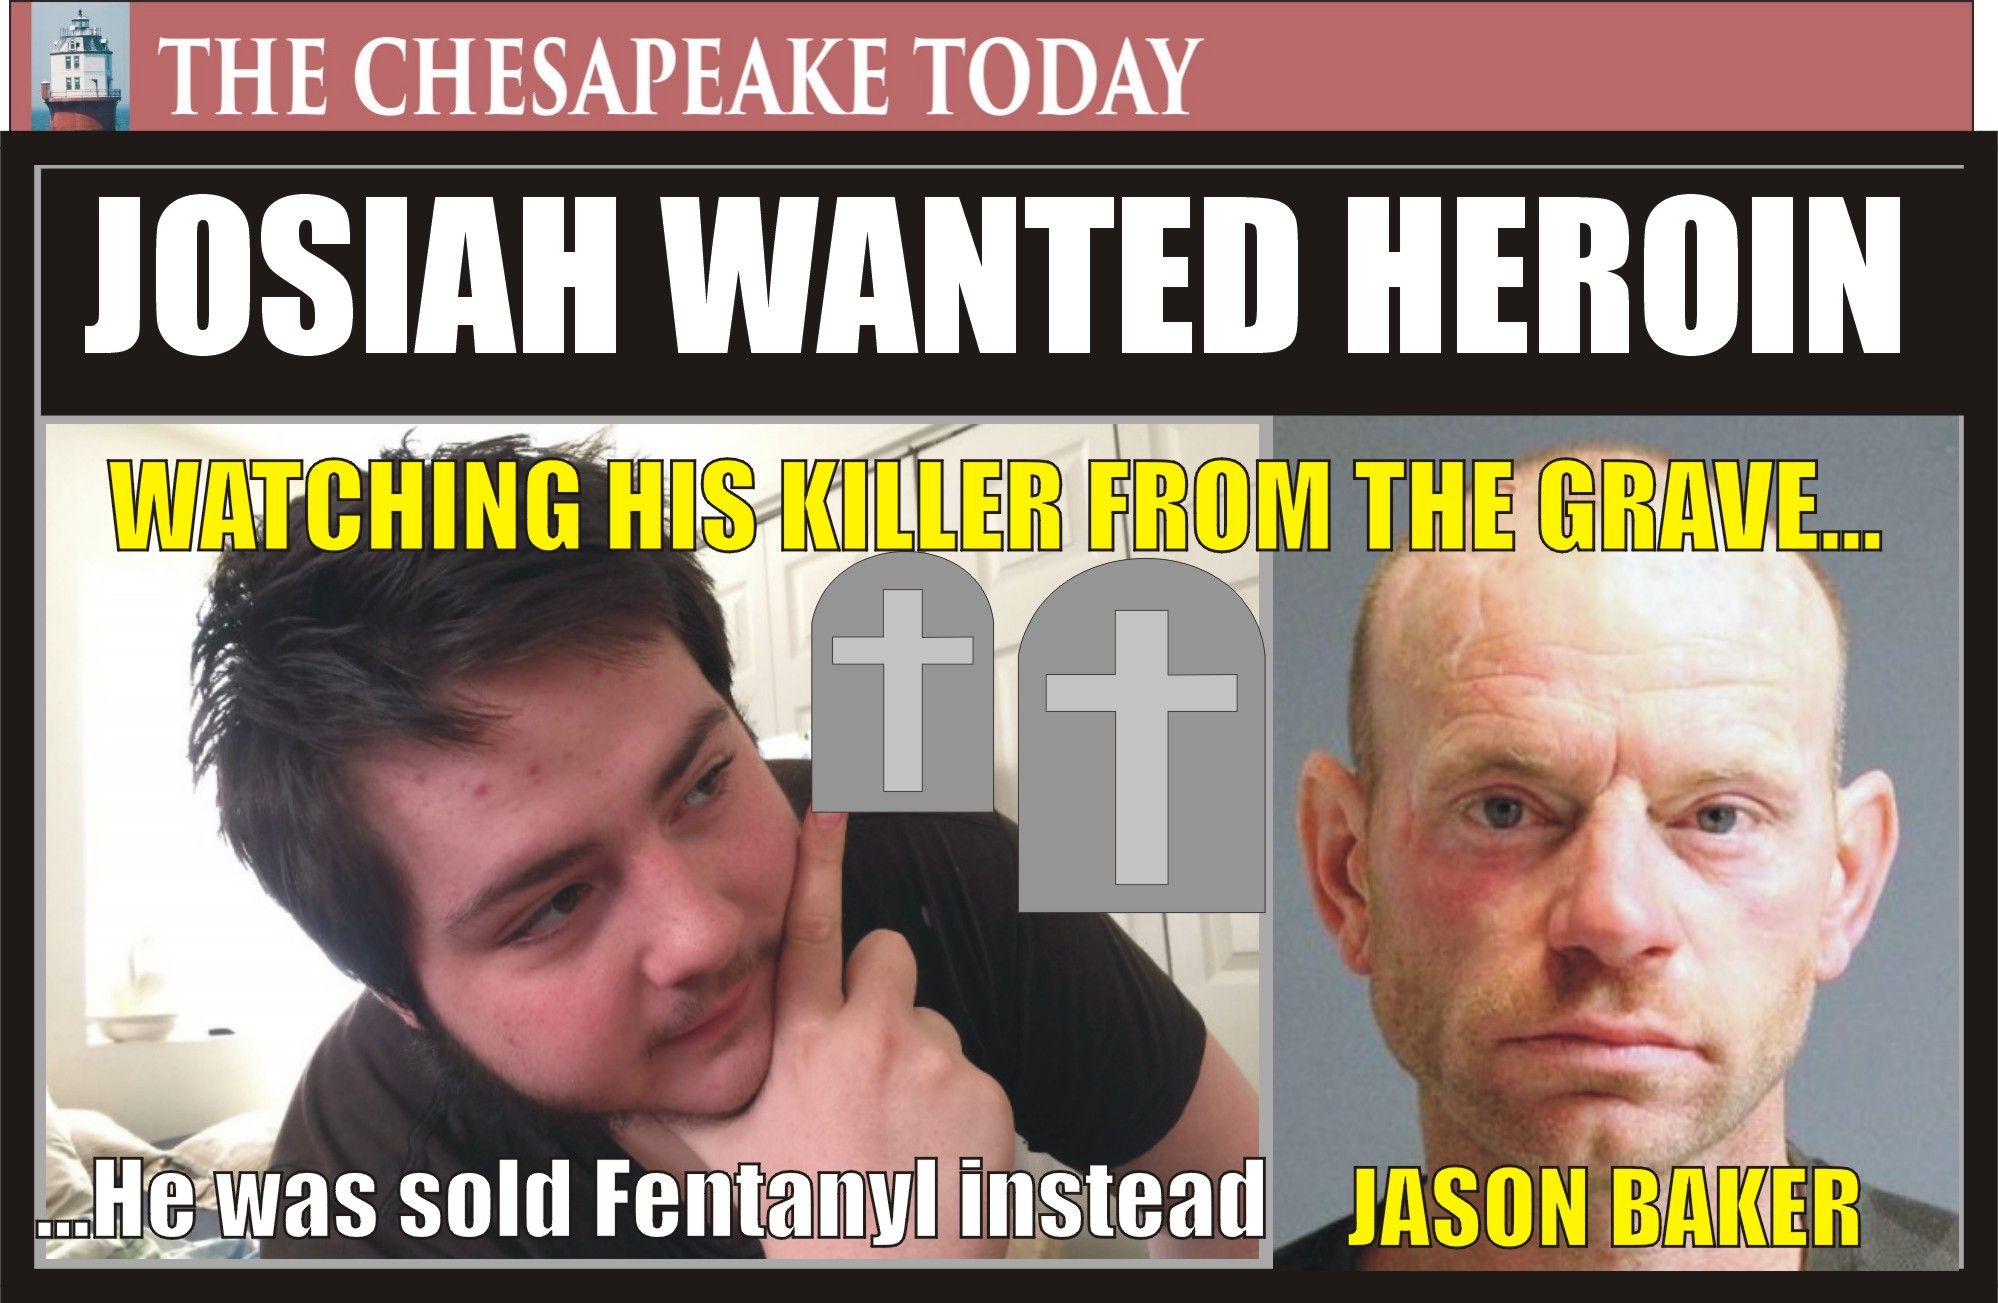 HEROIN HIGHWAY TO HELL: Jason P. Baker Sentenced to 15-Years in Prison for Dealing Fentanyl-Fatal Overdose to Josiah Klaes; Wanted Heroin